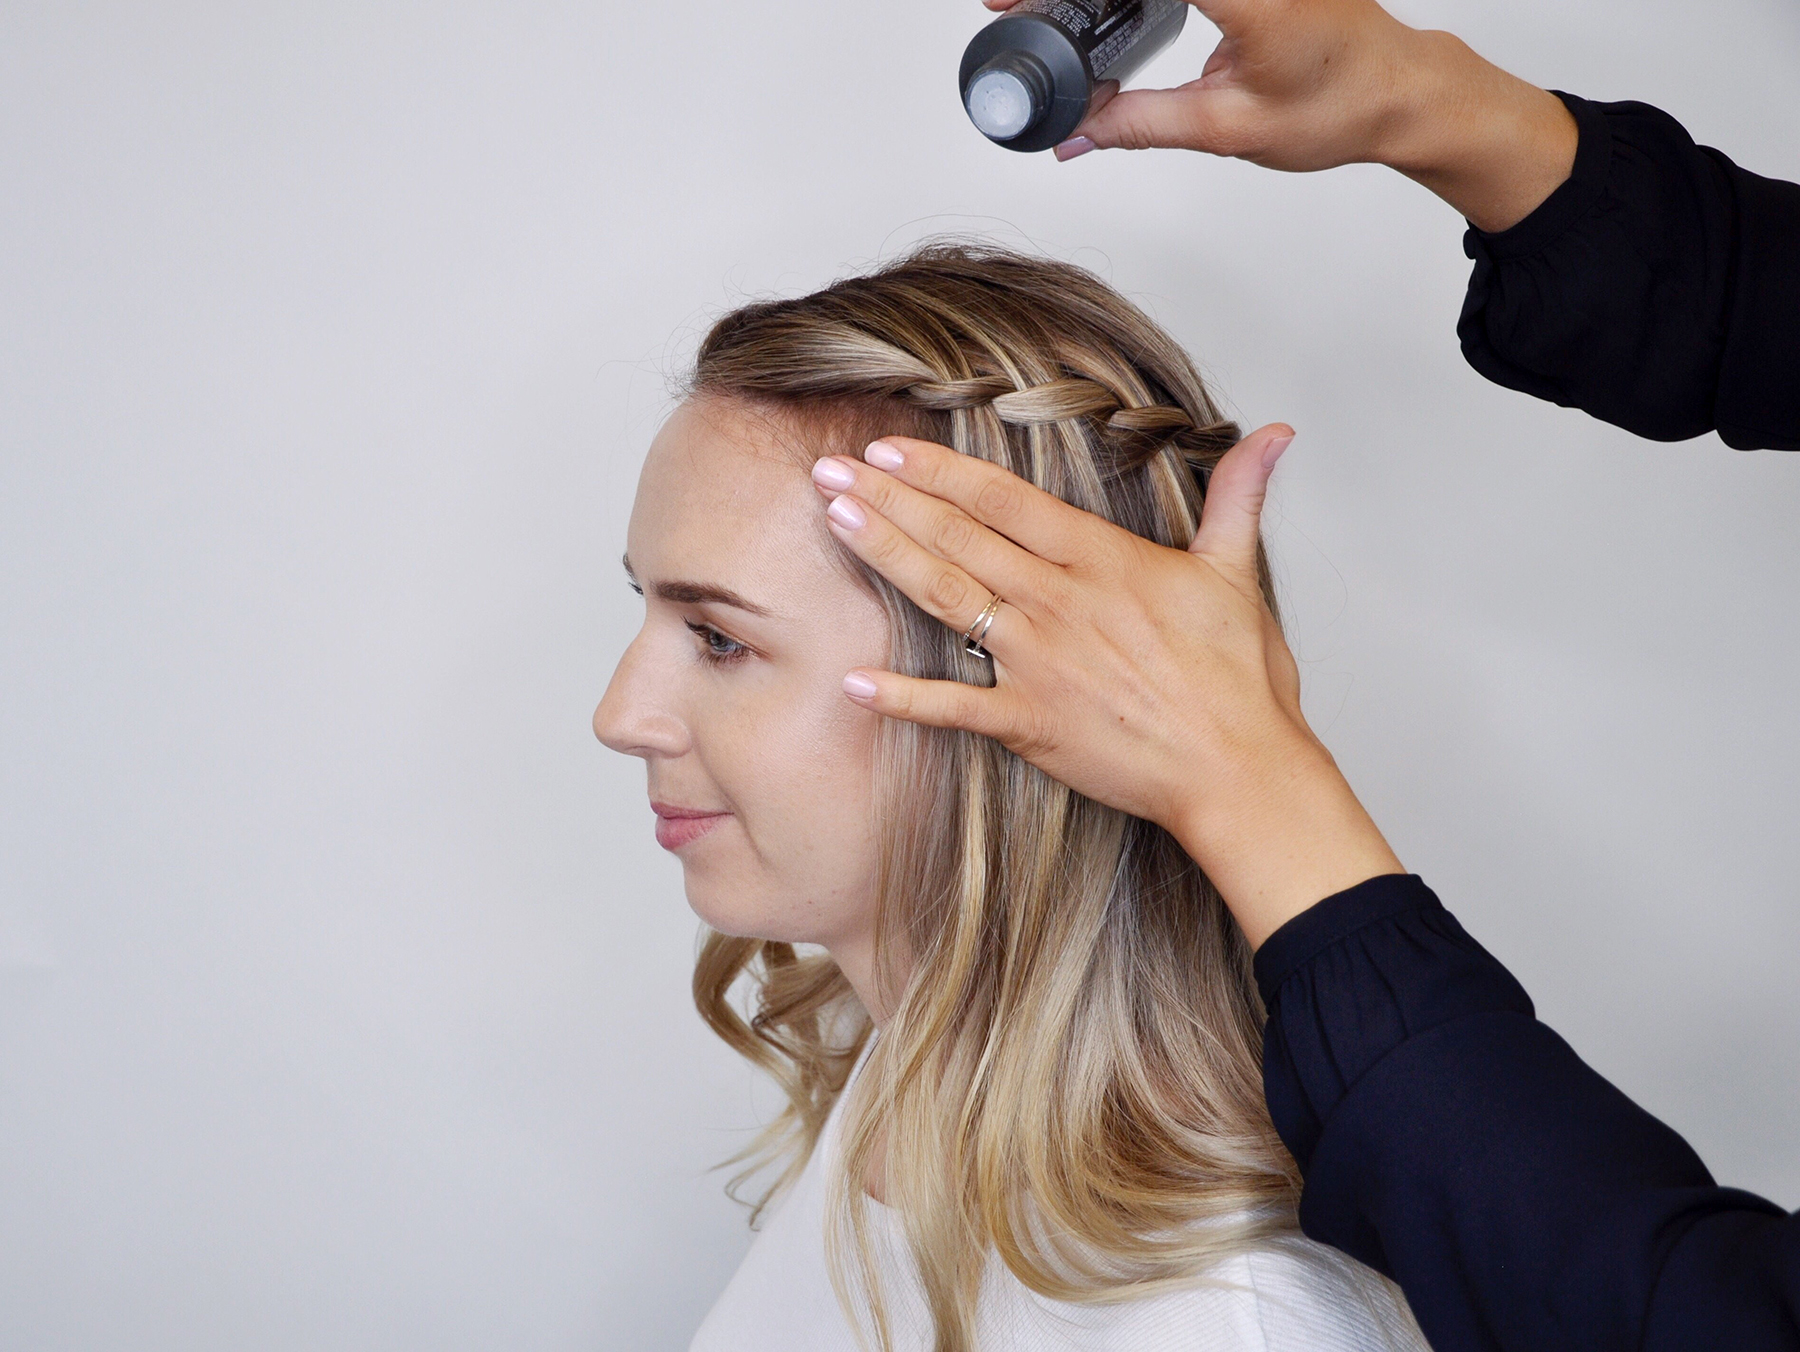 Applying texture powder to waterfall braid